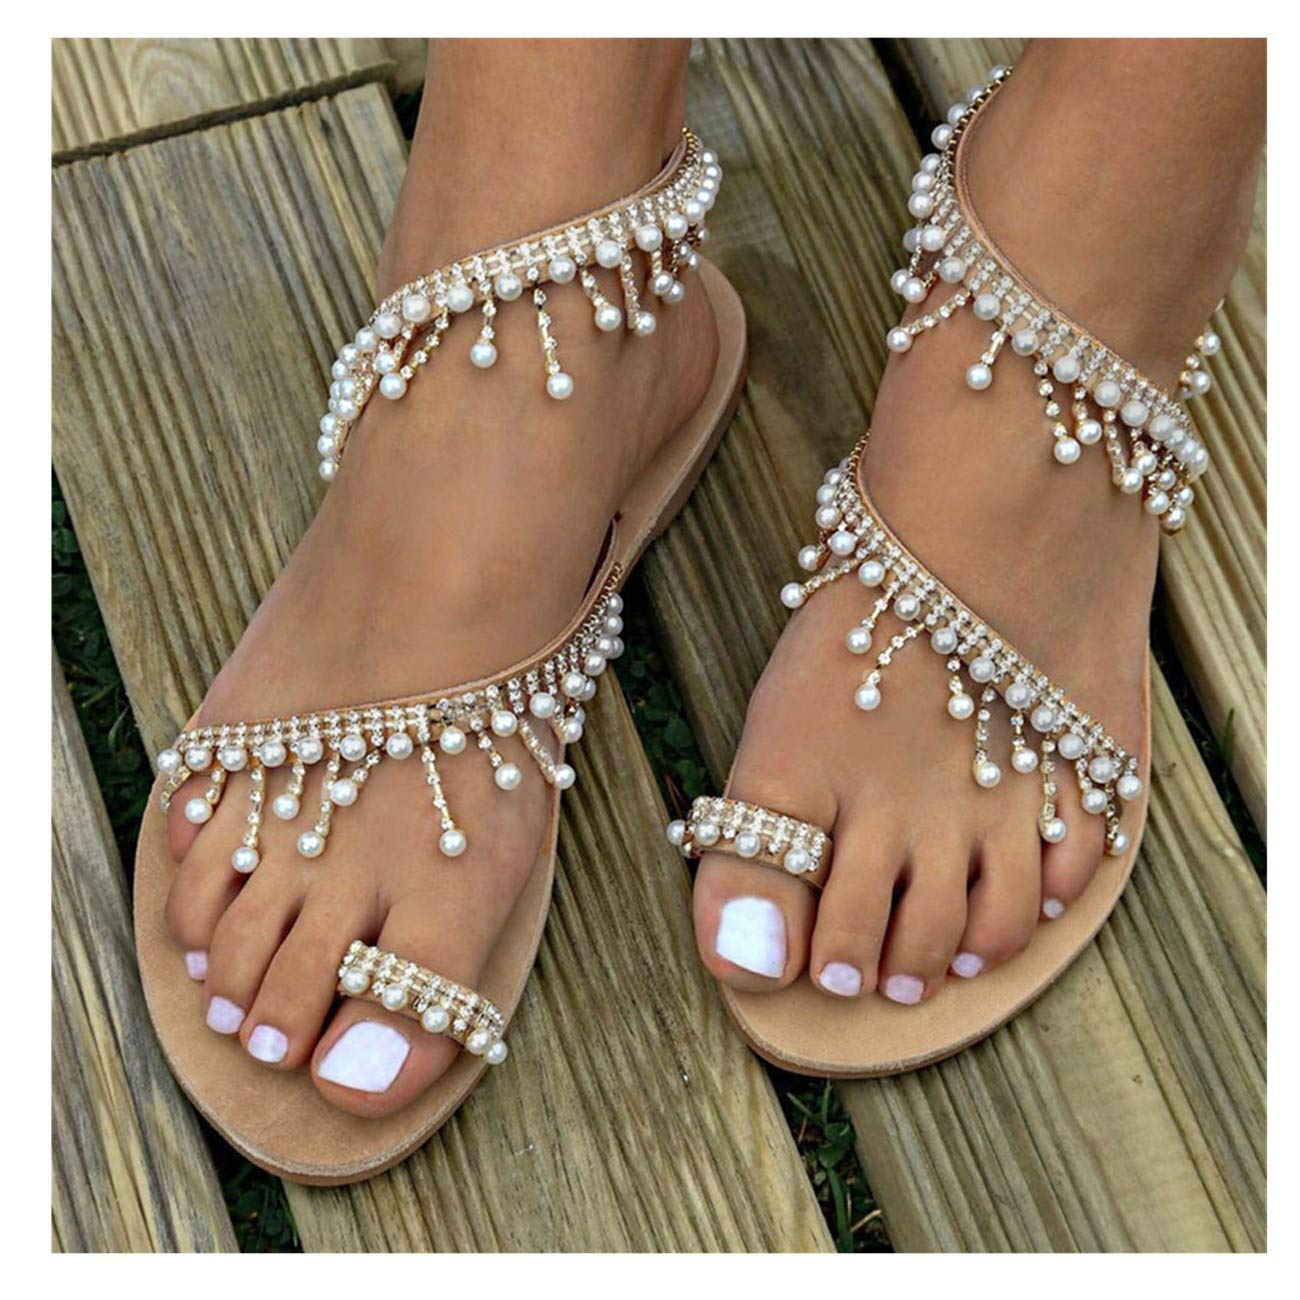 9b68043a Amazon.com: Womens Summer Bohemia Flat Sandals Beads Pearl Beach Clip Toe Flip  Flops Flat Bottom Sandals Shoes: Clothing